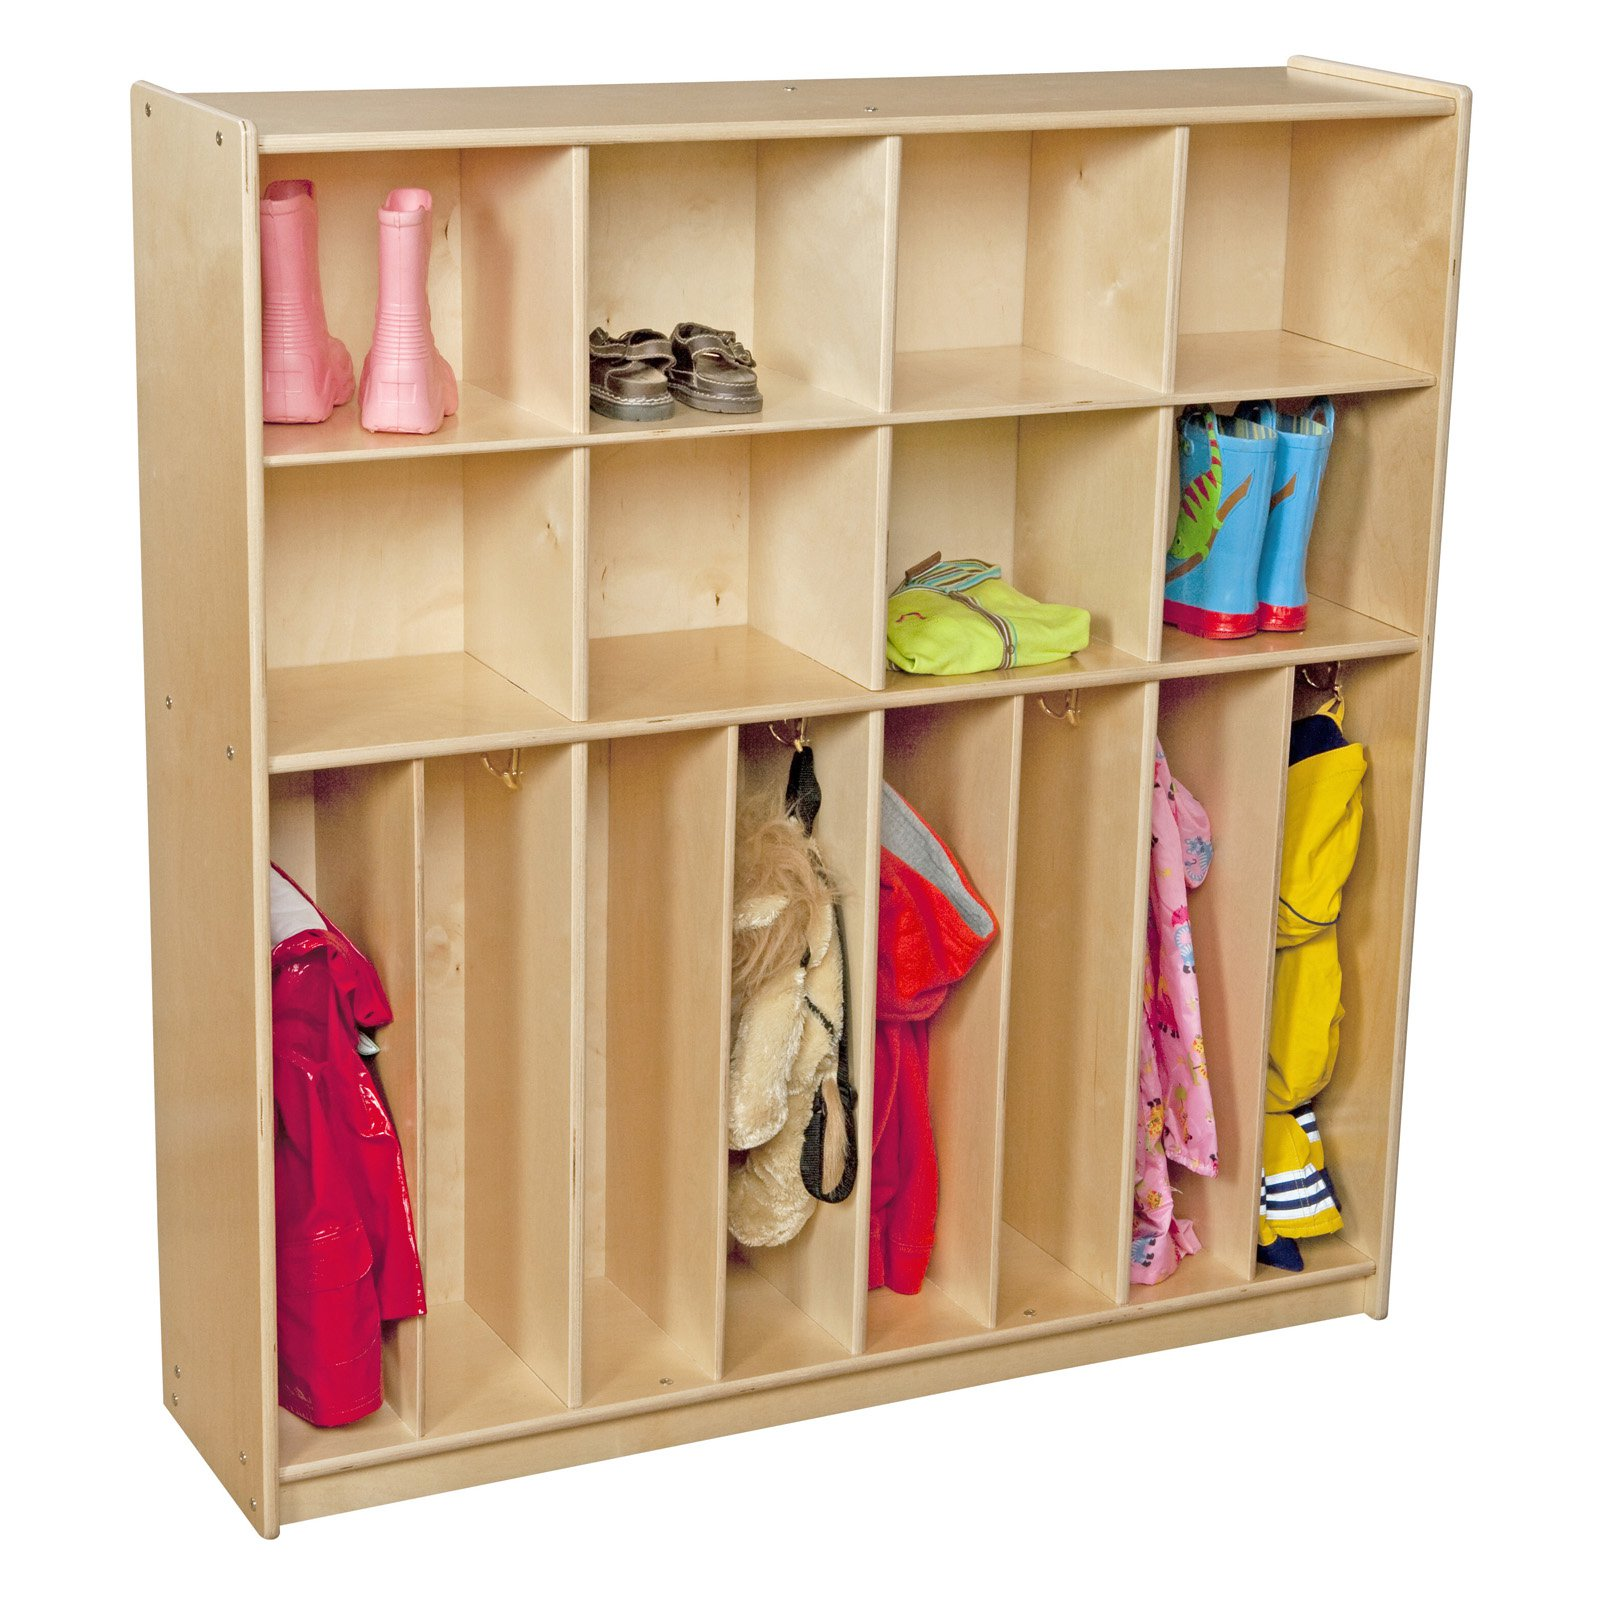 Wood Designs Contender 47 in. Baltic Birch Neat-n-Trim Lockers